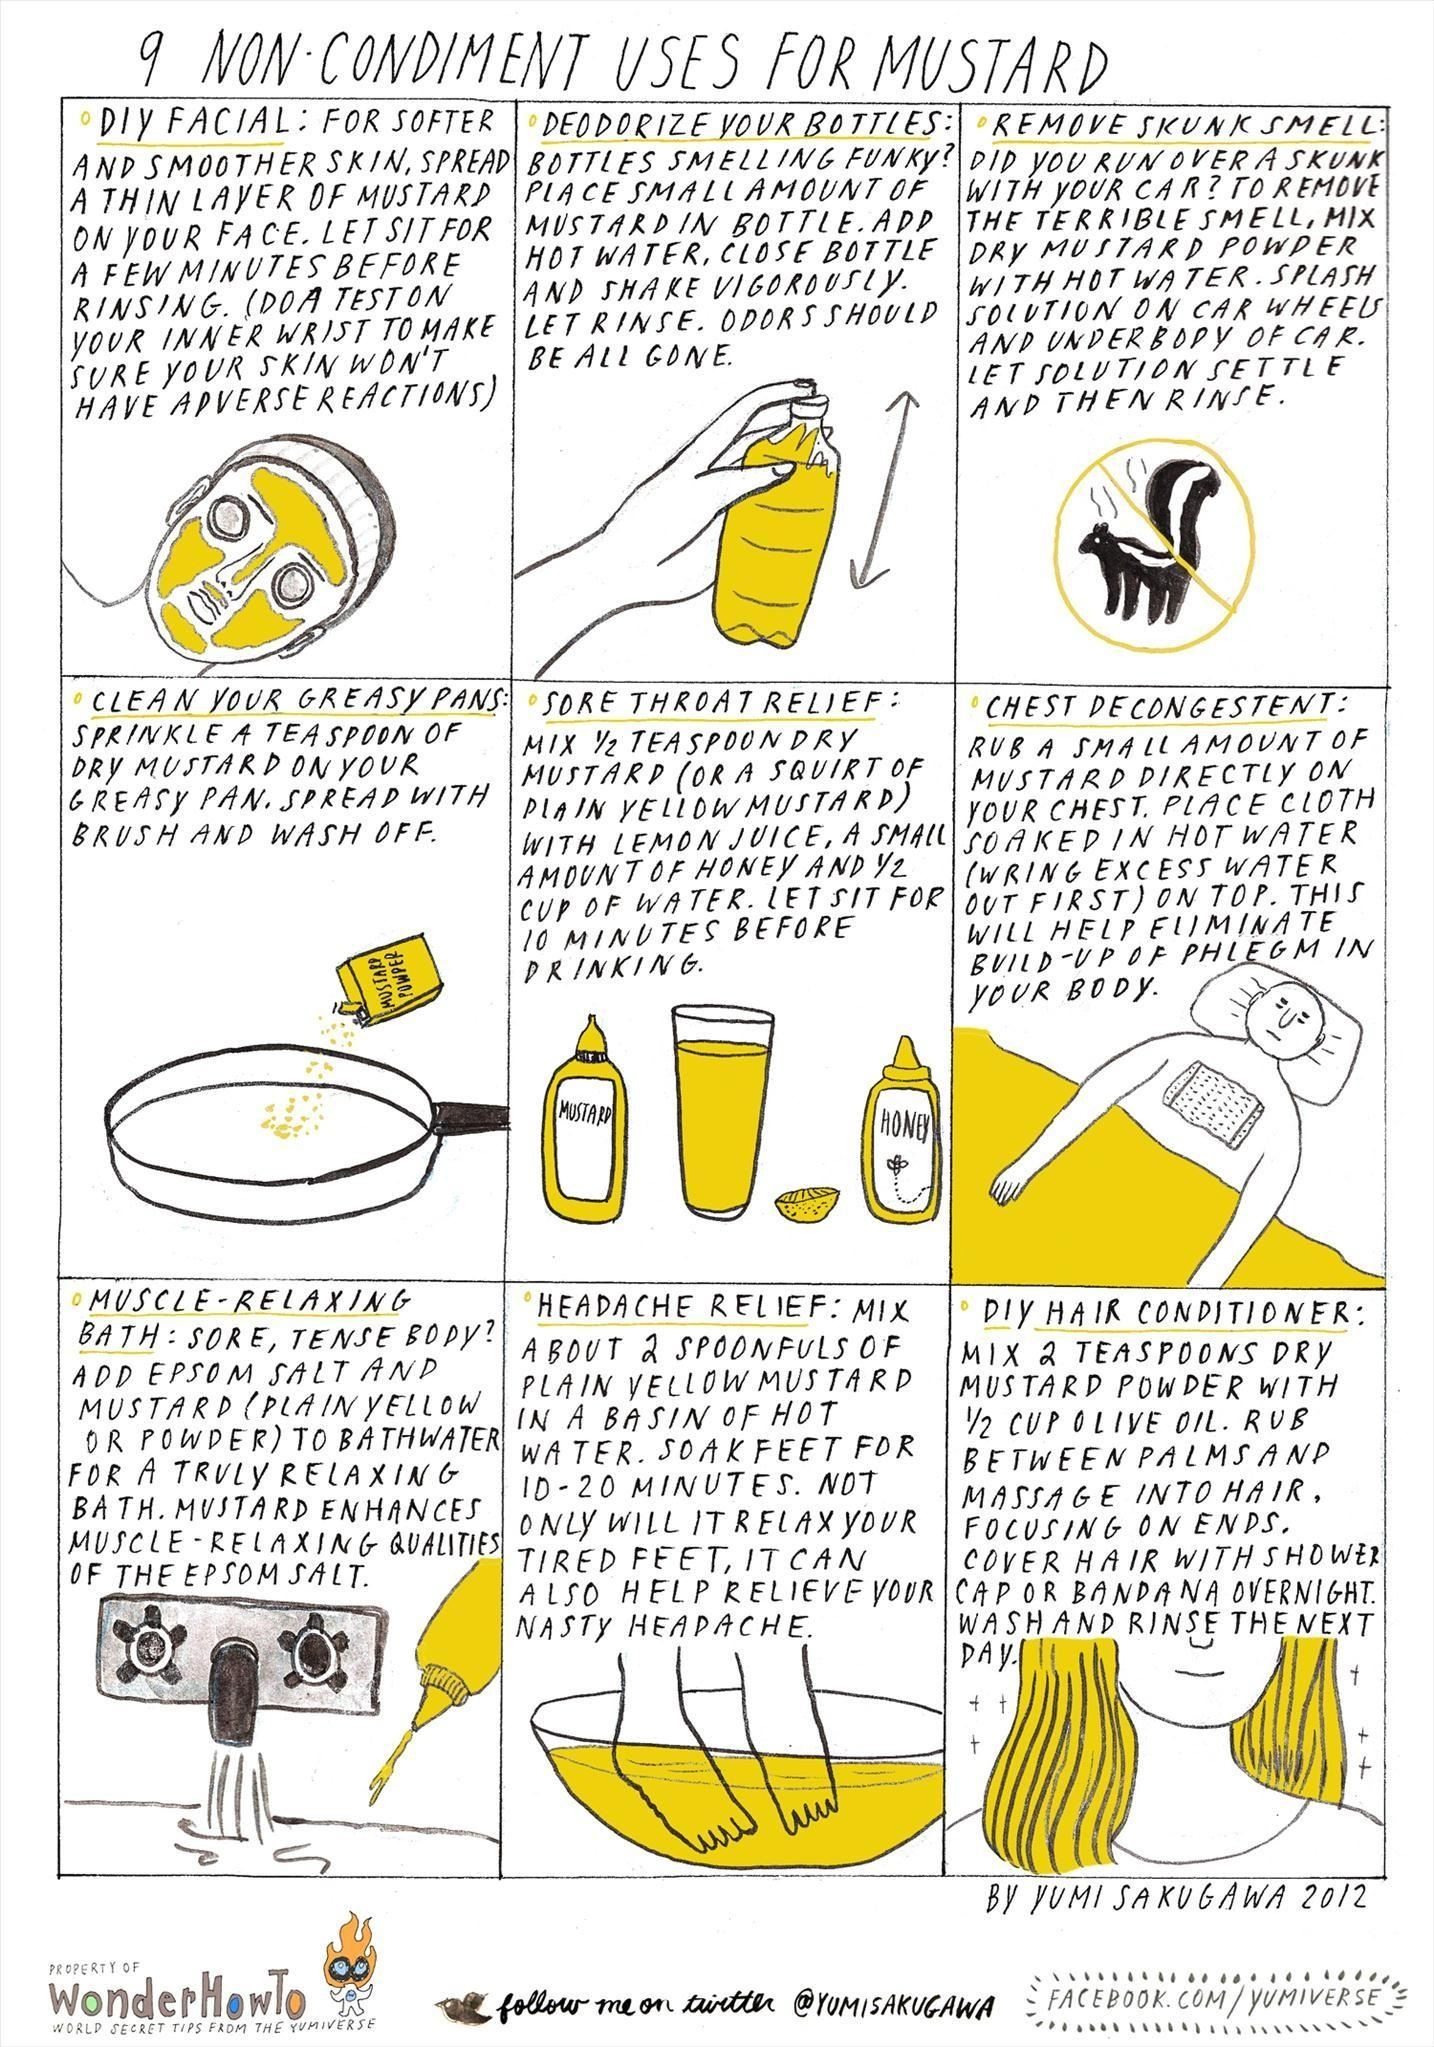 9 Non-Condiment Uses for Mustard